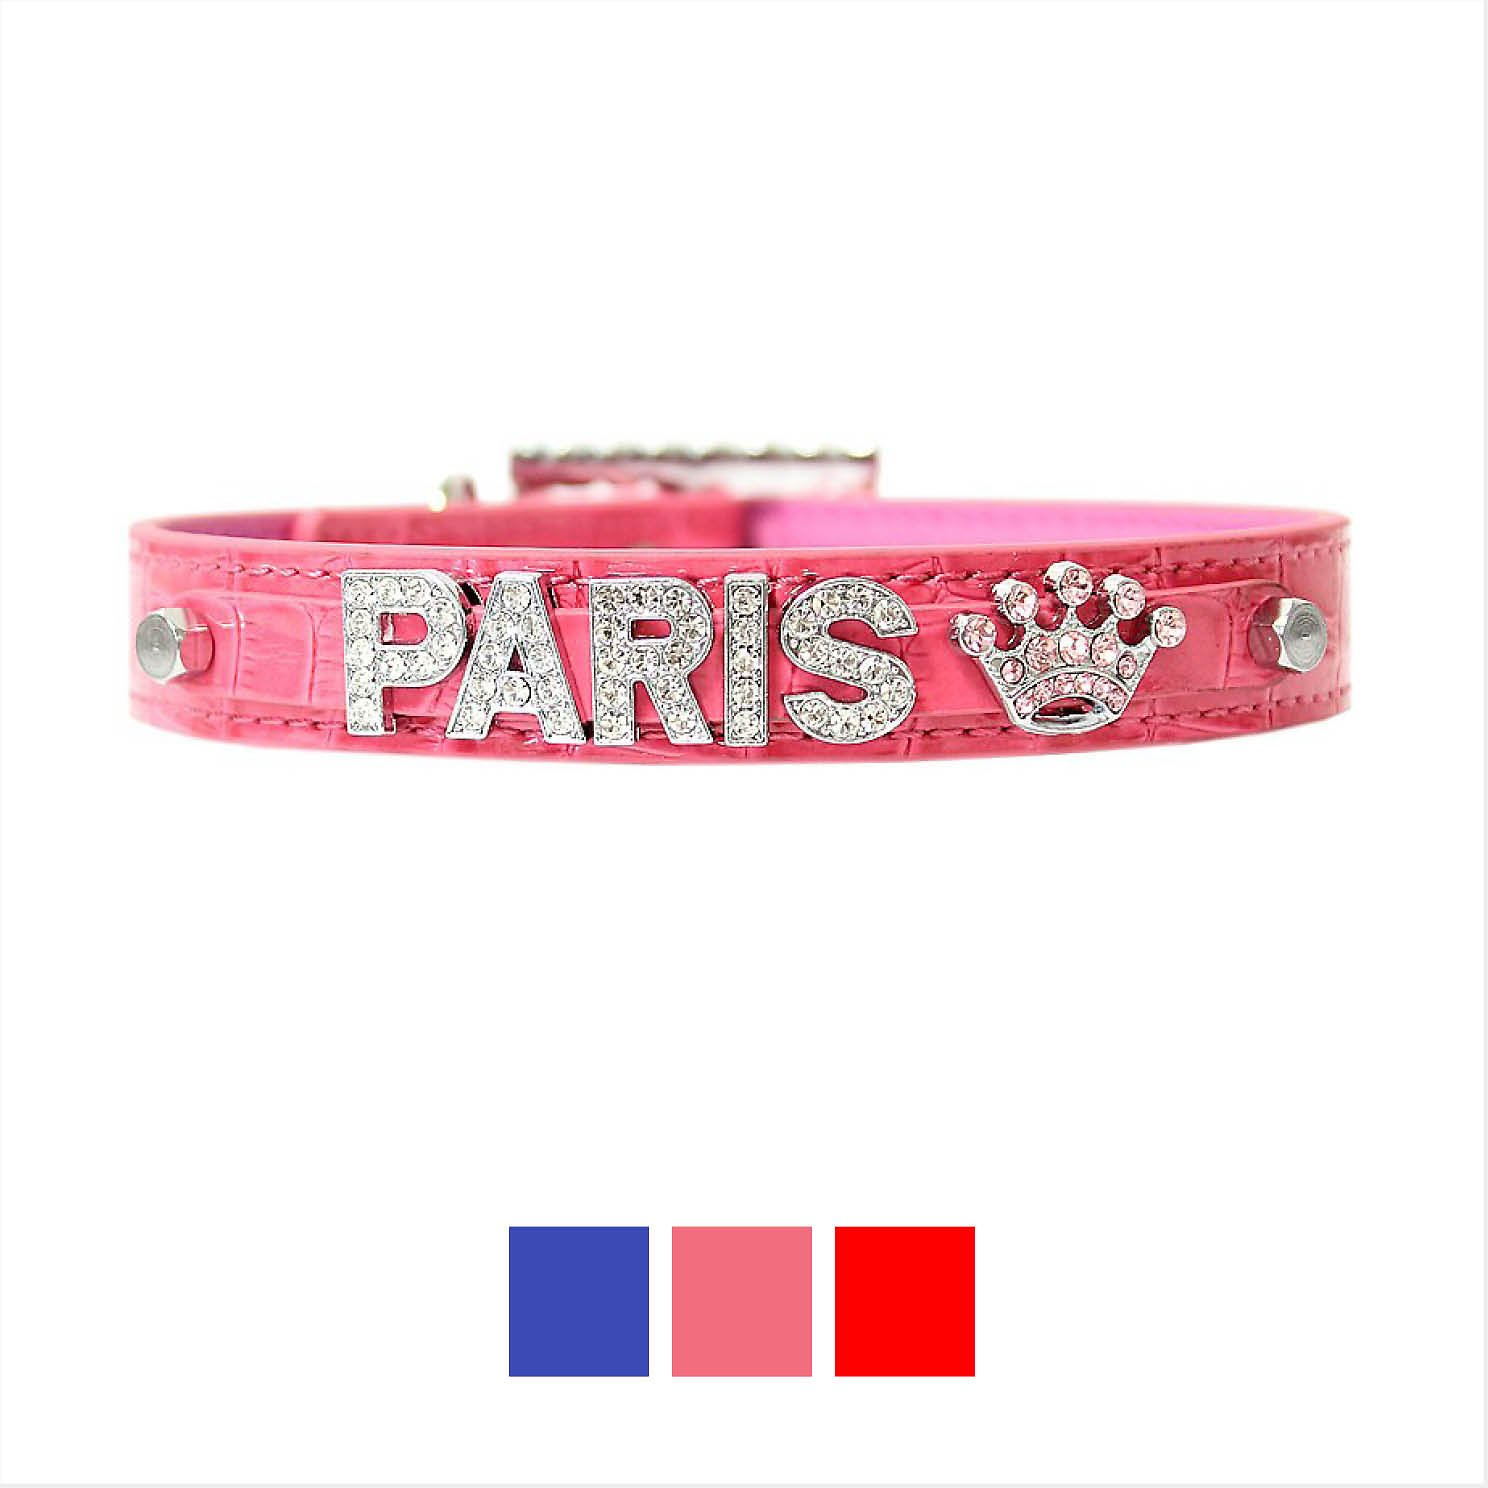 Parisian Pet Croc Texture Personalized Dog Collar Pink Small